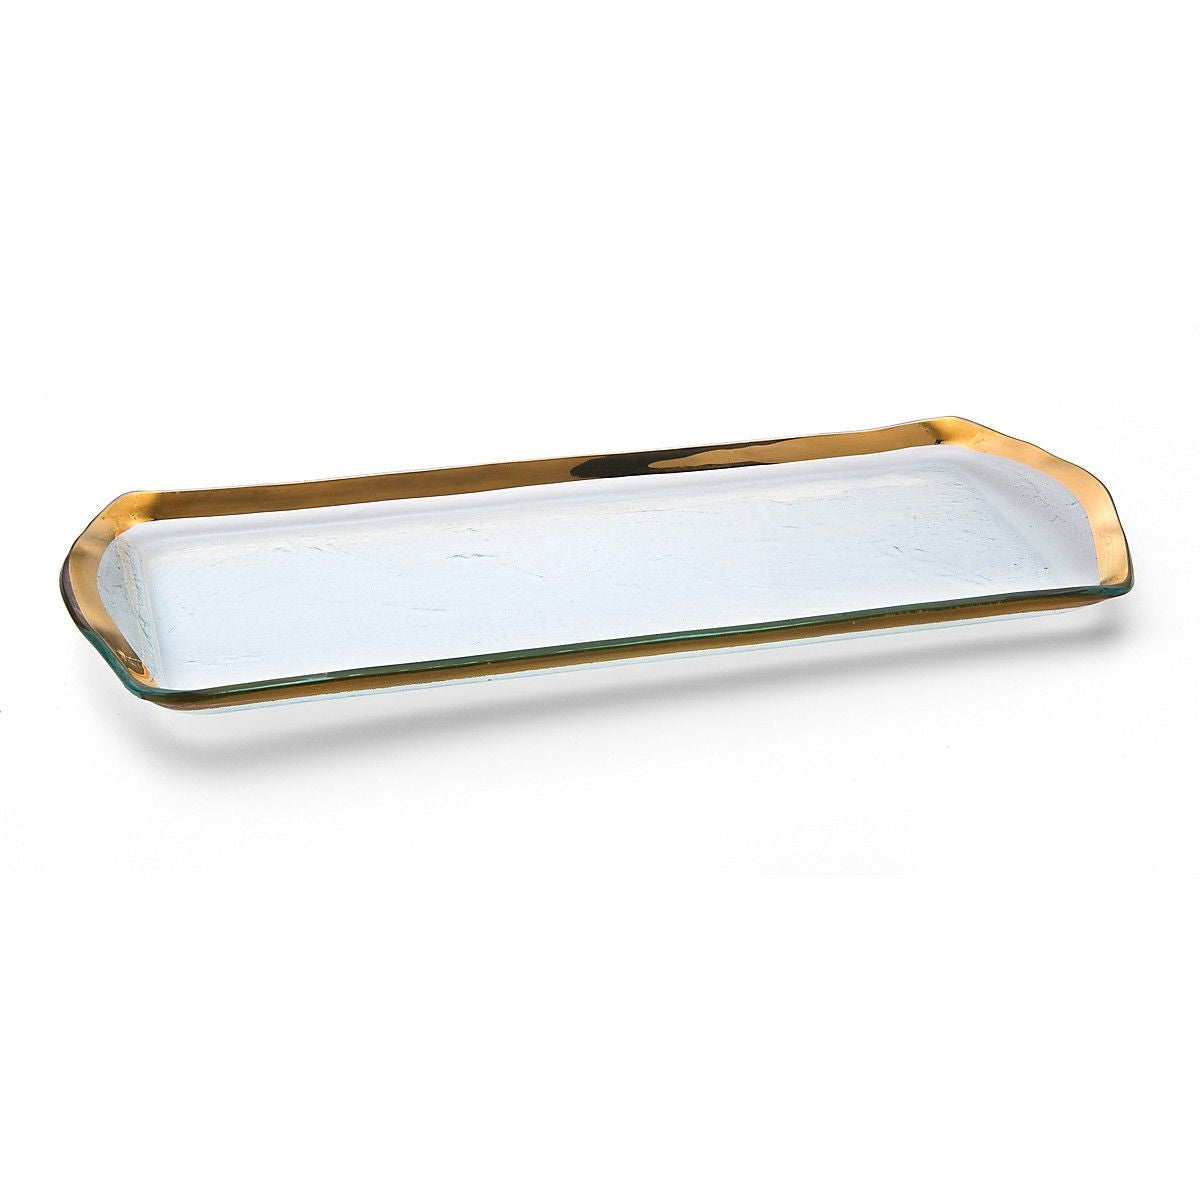 Roman Antique Gold Oblong Pastry Tray